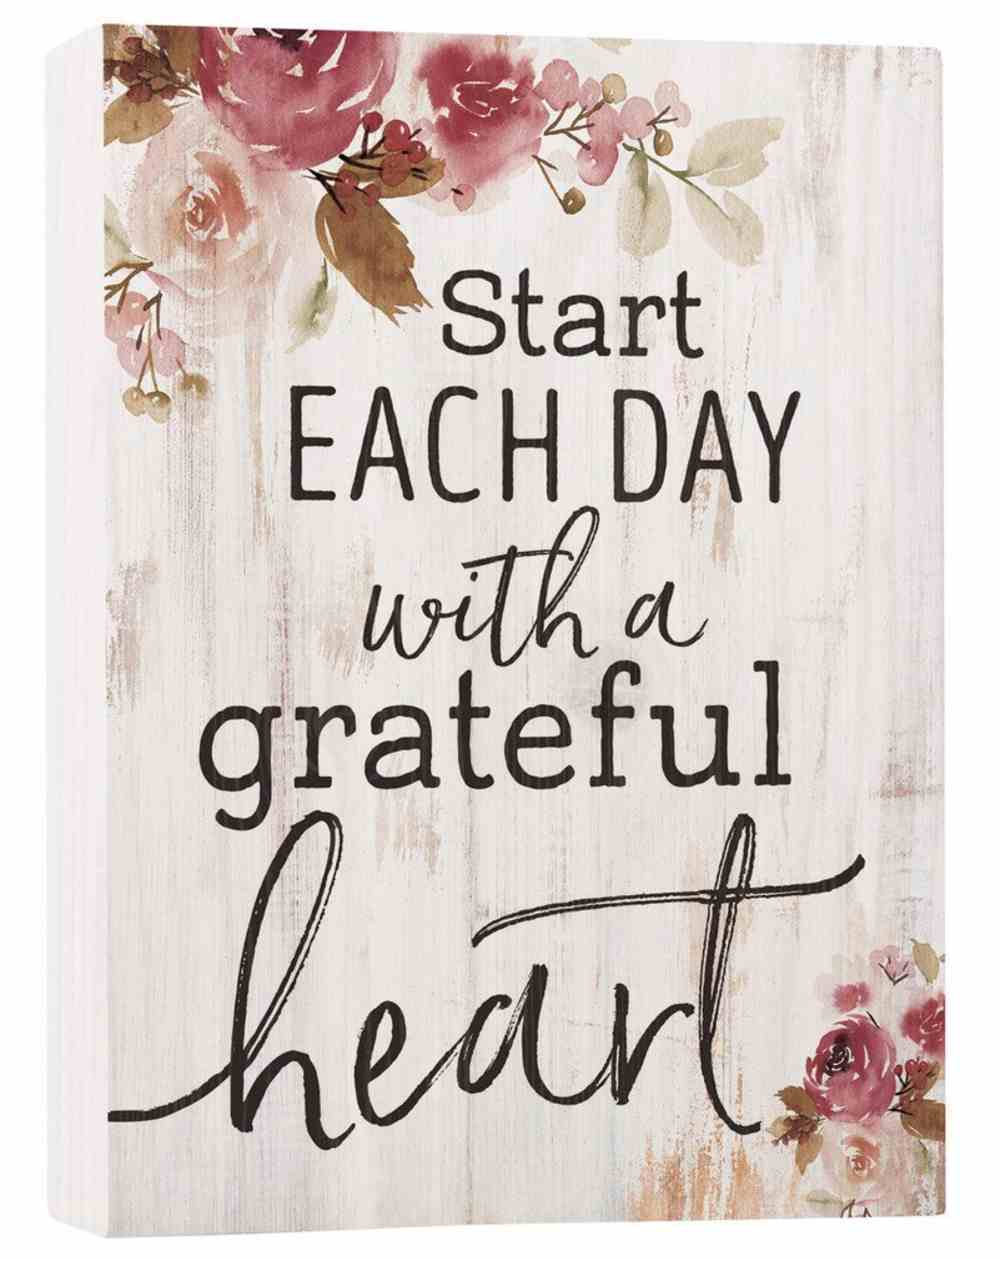 Tabletop Decor: Start Each Day With a Greatful Heart, Floral Plaque